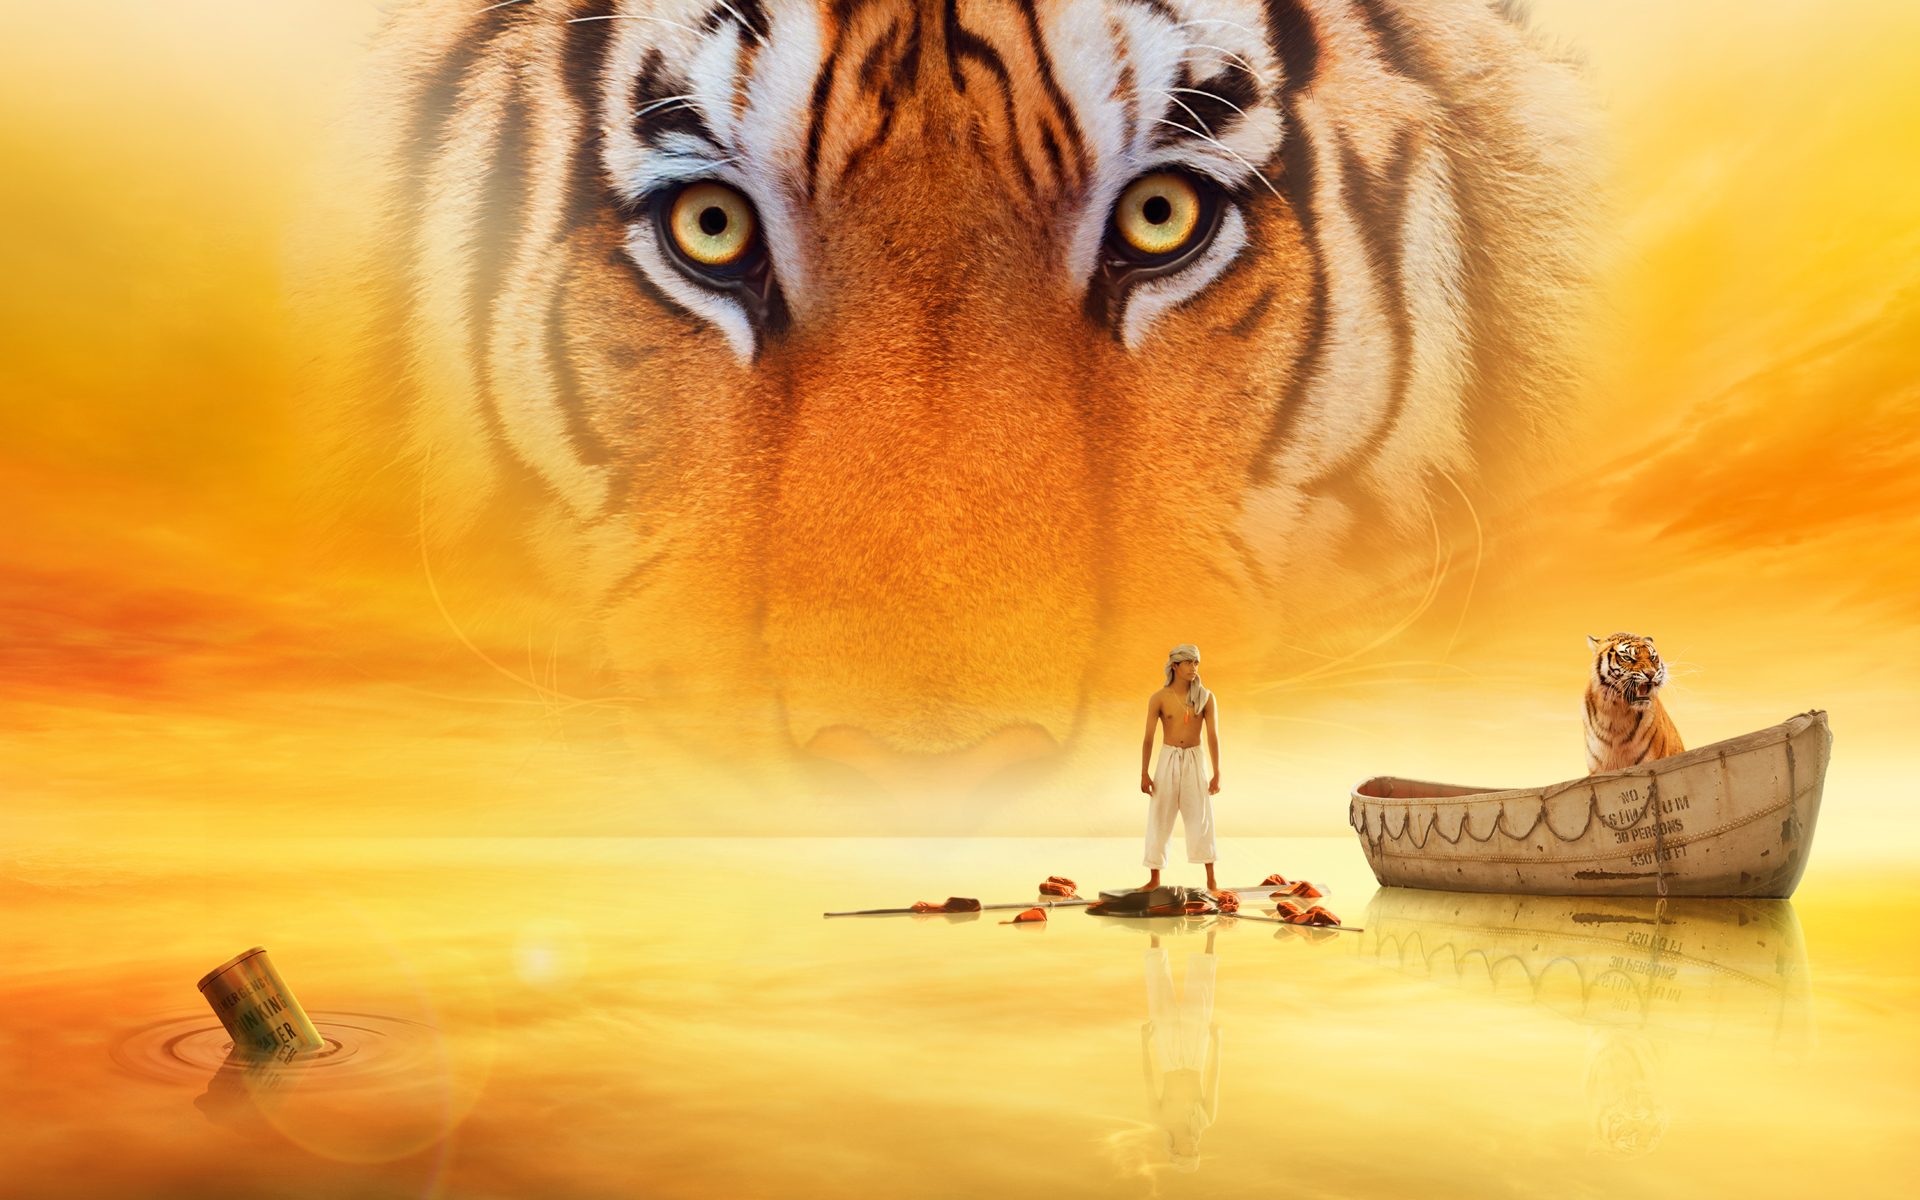 Wallpaper Life Of Pi Images